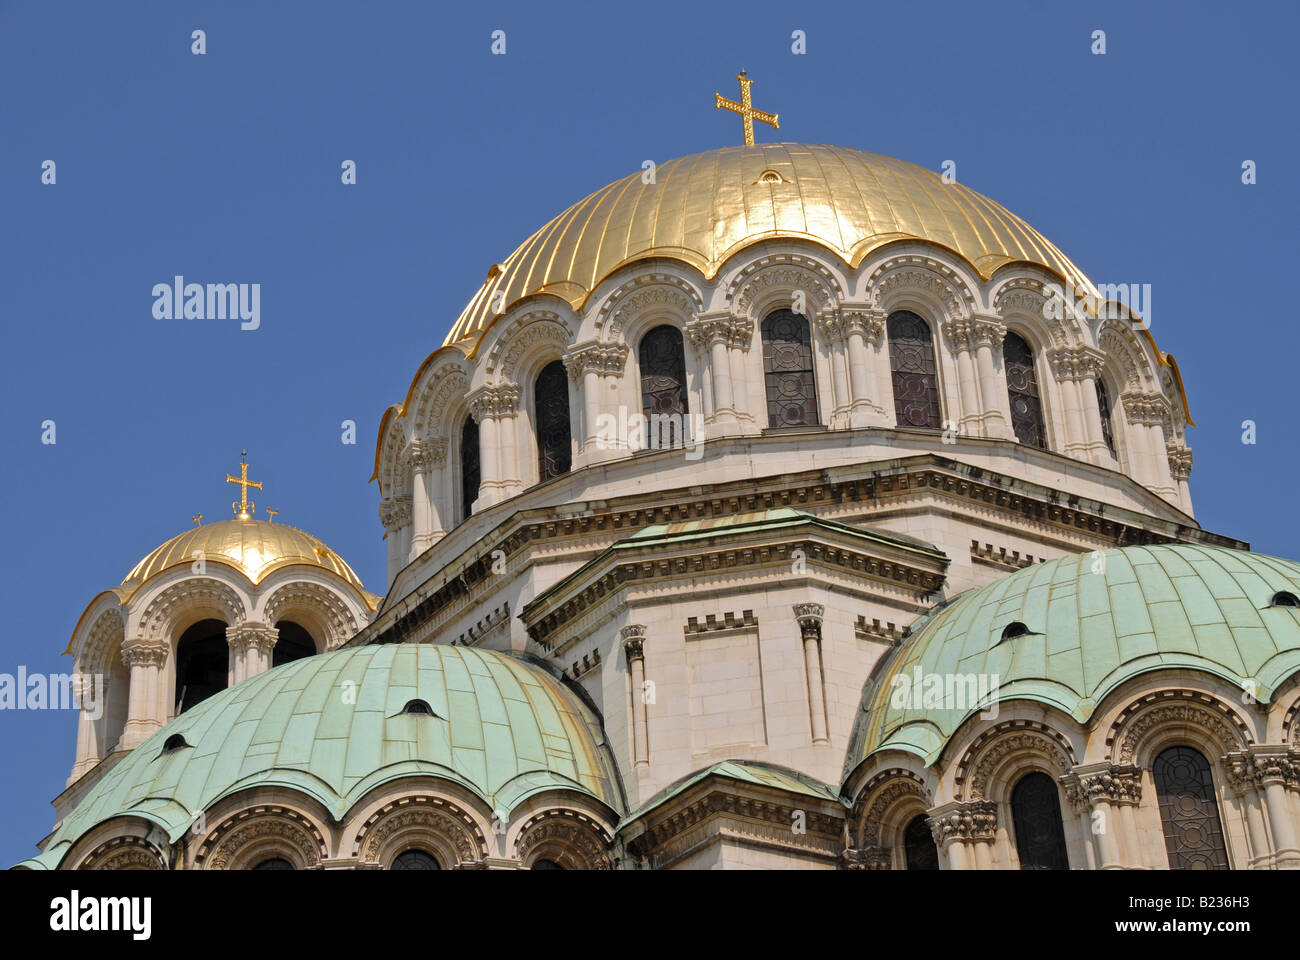 The Alexander Nevski cathedral in the centre of Sofia, Bulgaria. - Stock Image